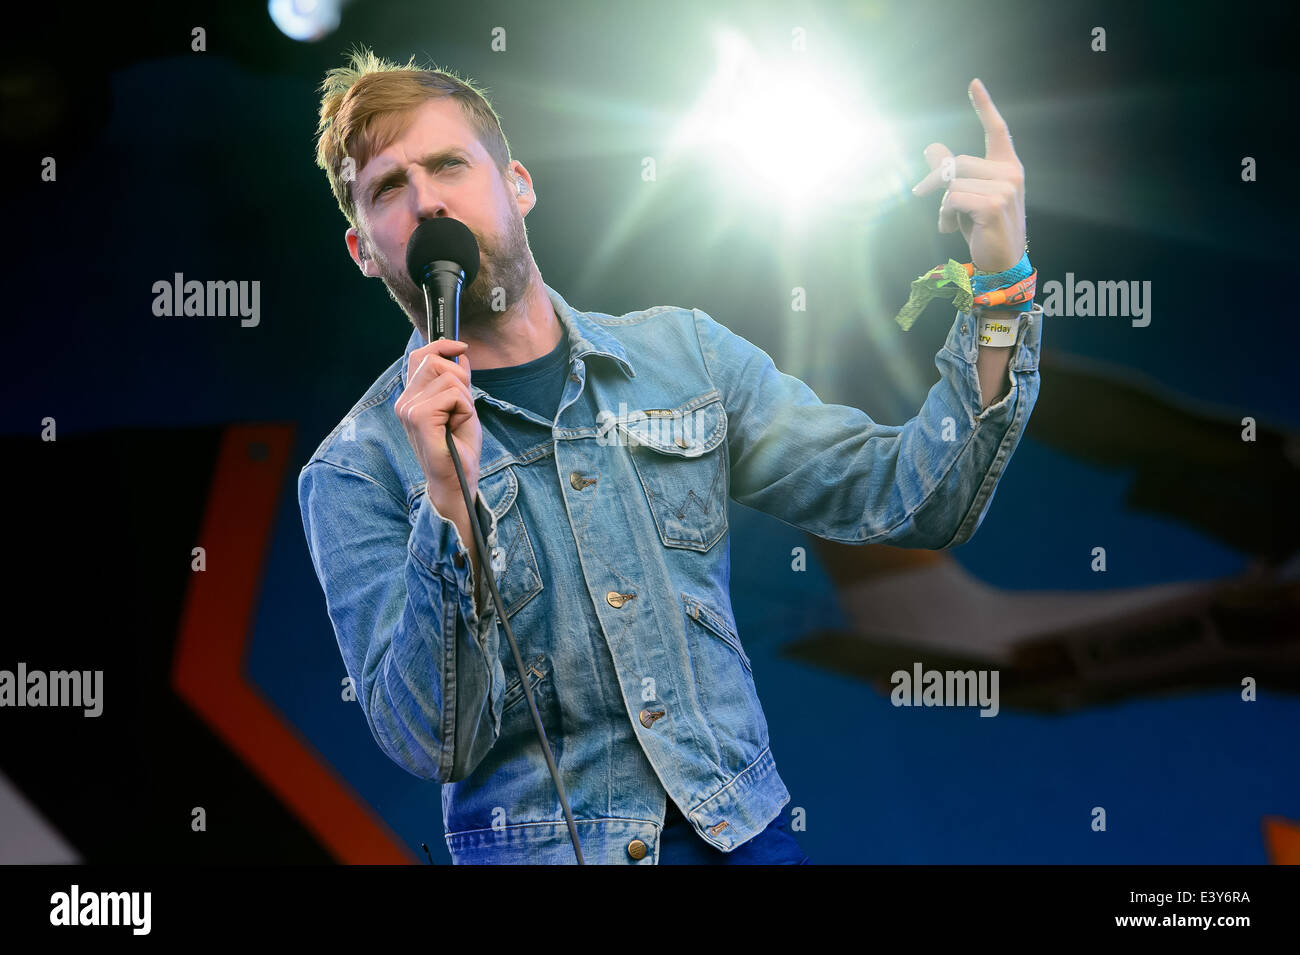 Ricky Wilson from the Kaiser Chiefs performs at Glastonbury music festival, England, Friday, June 27, 2014. - Stock Image